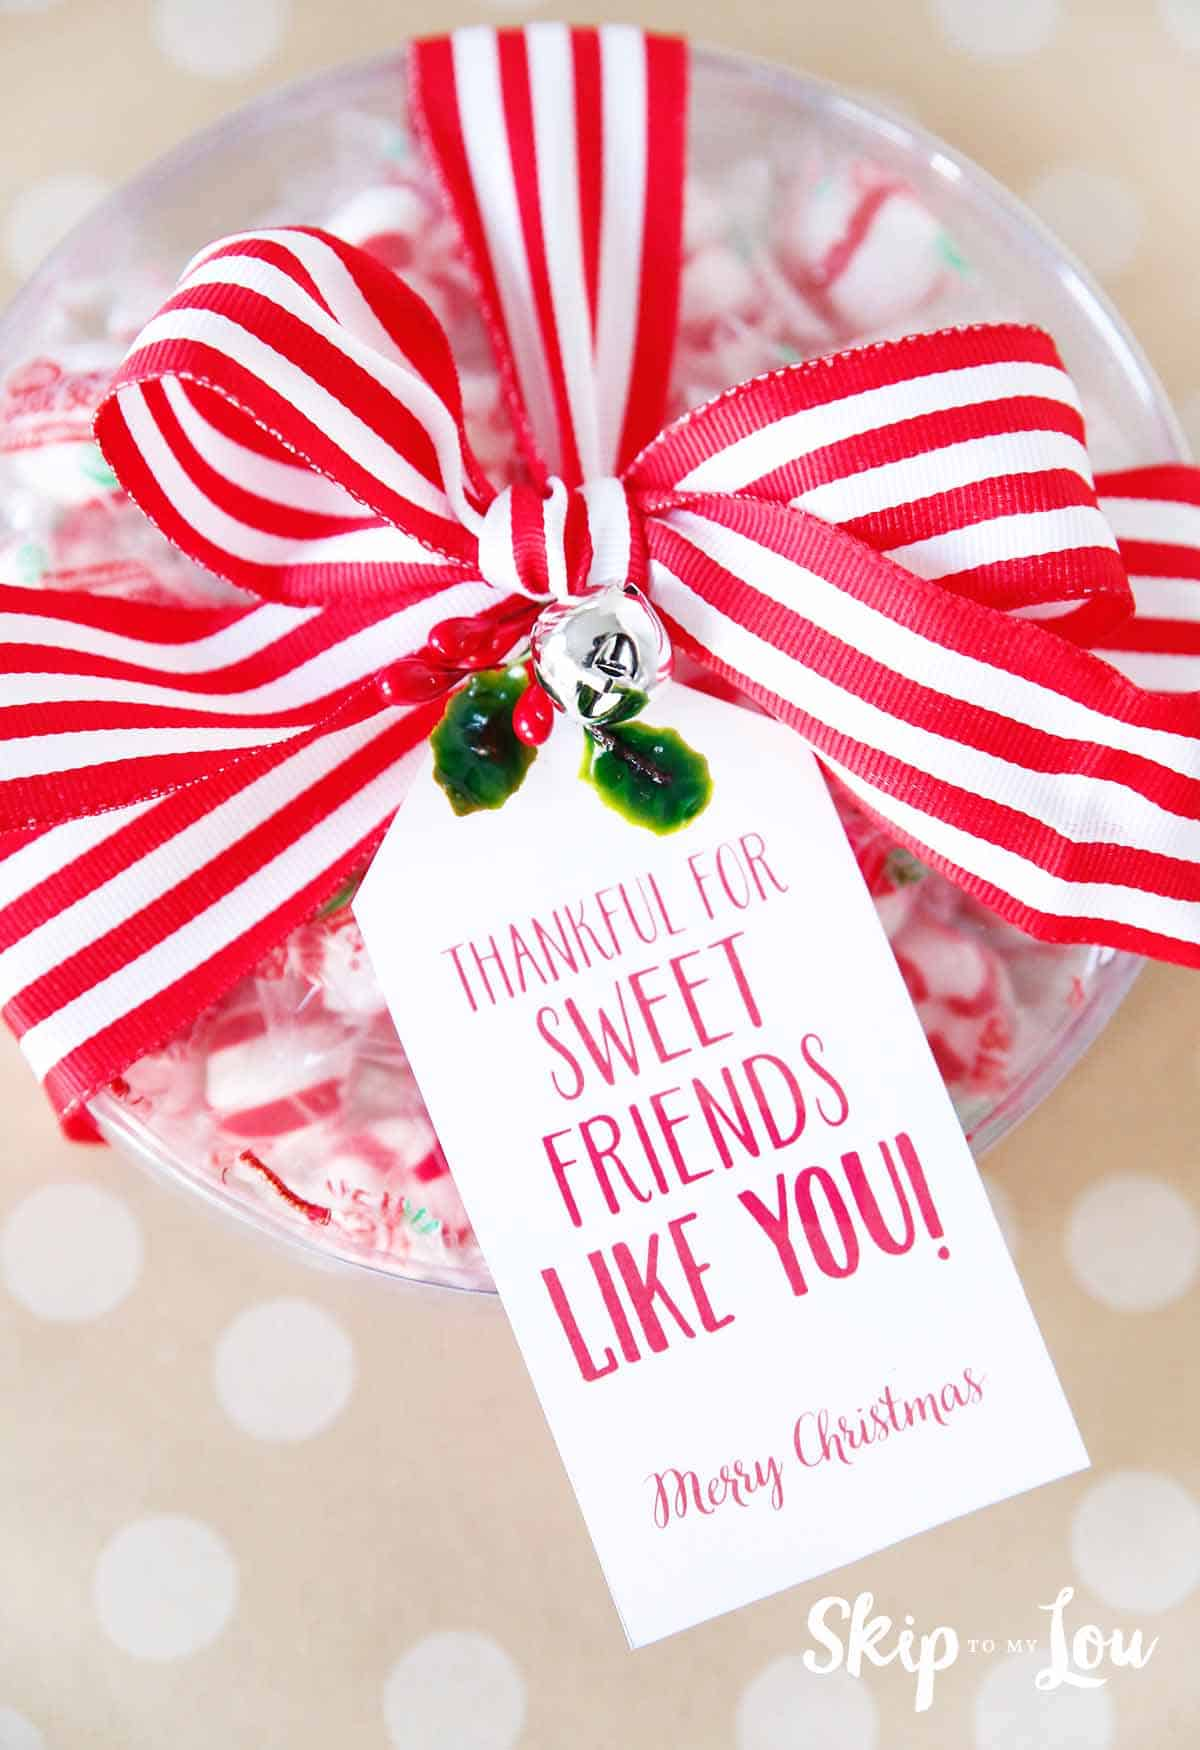 Cute Christmas Ideas For Friends.25 Easy Christmas Gift Ideas That Are Super Cute Skip To